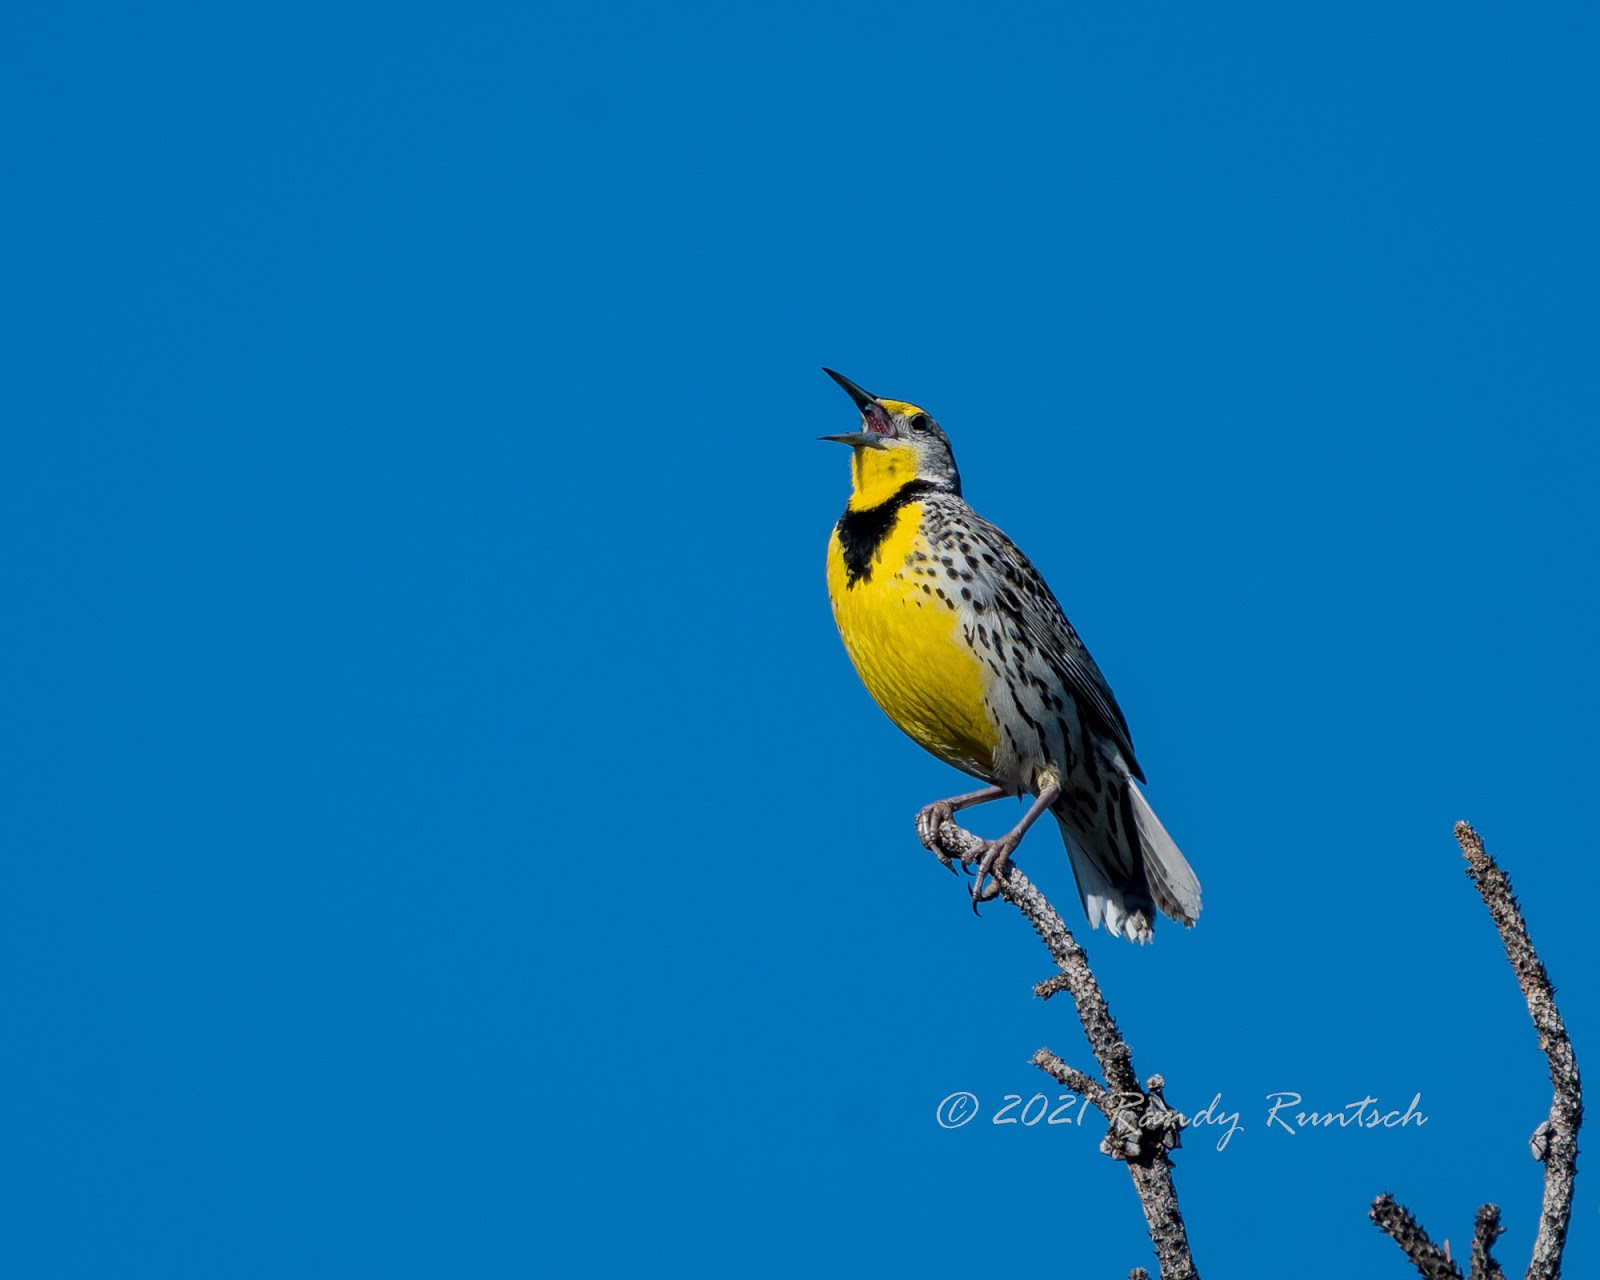 Western meadowlark. Photo by the author.